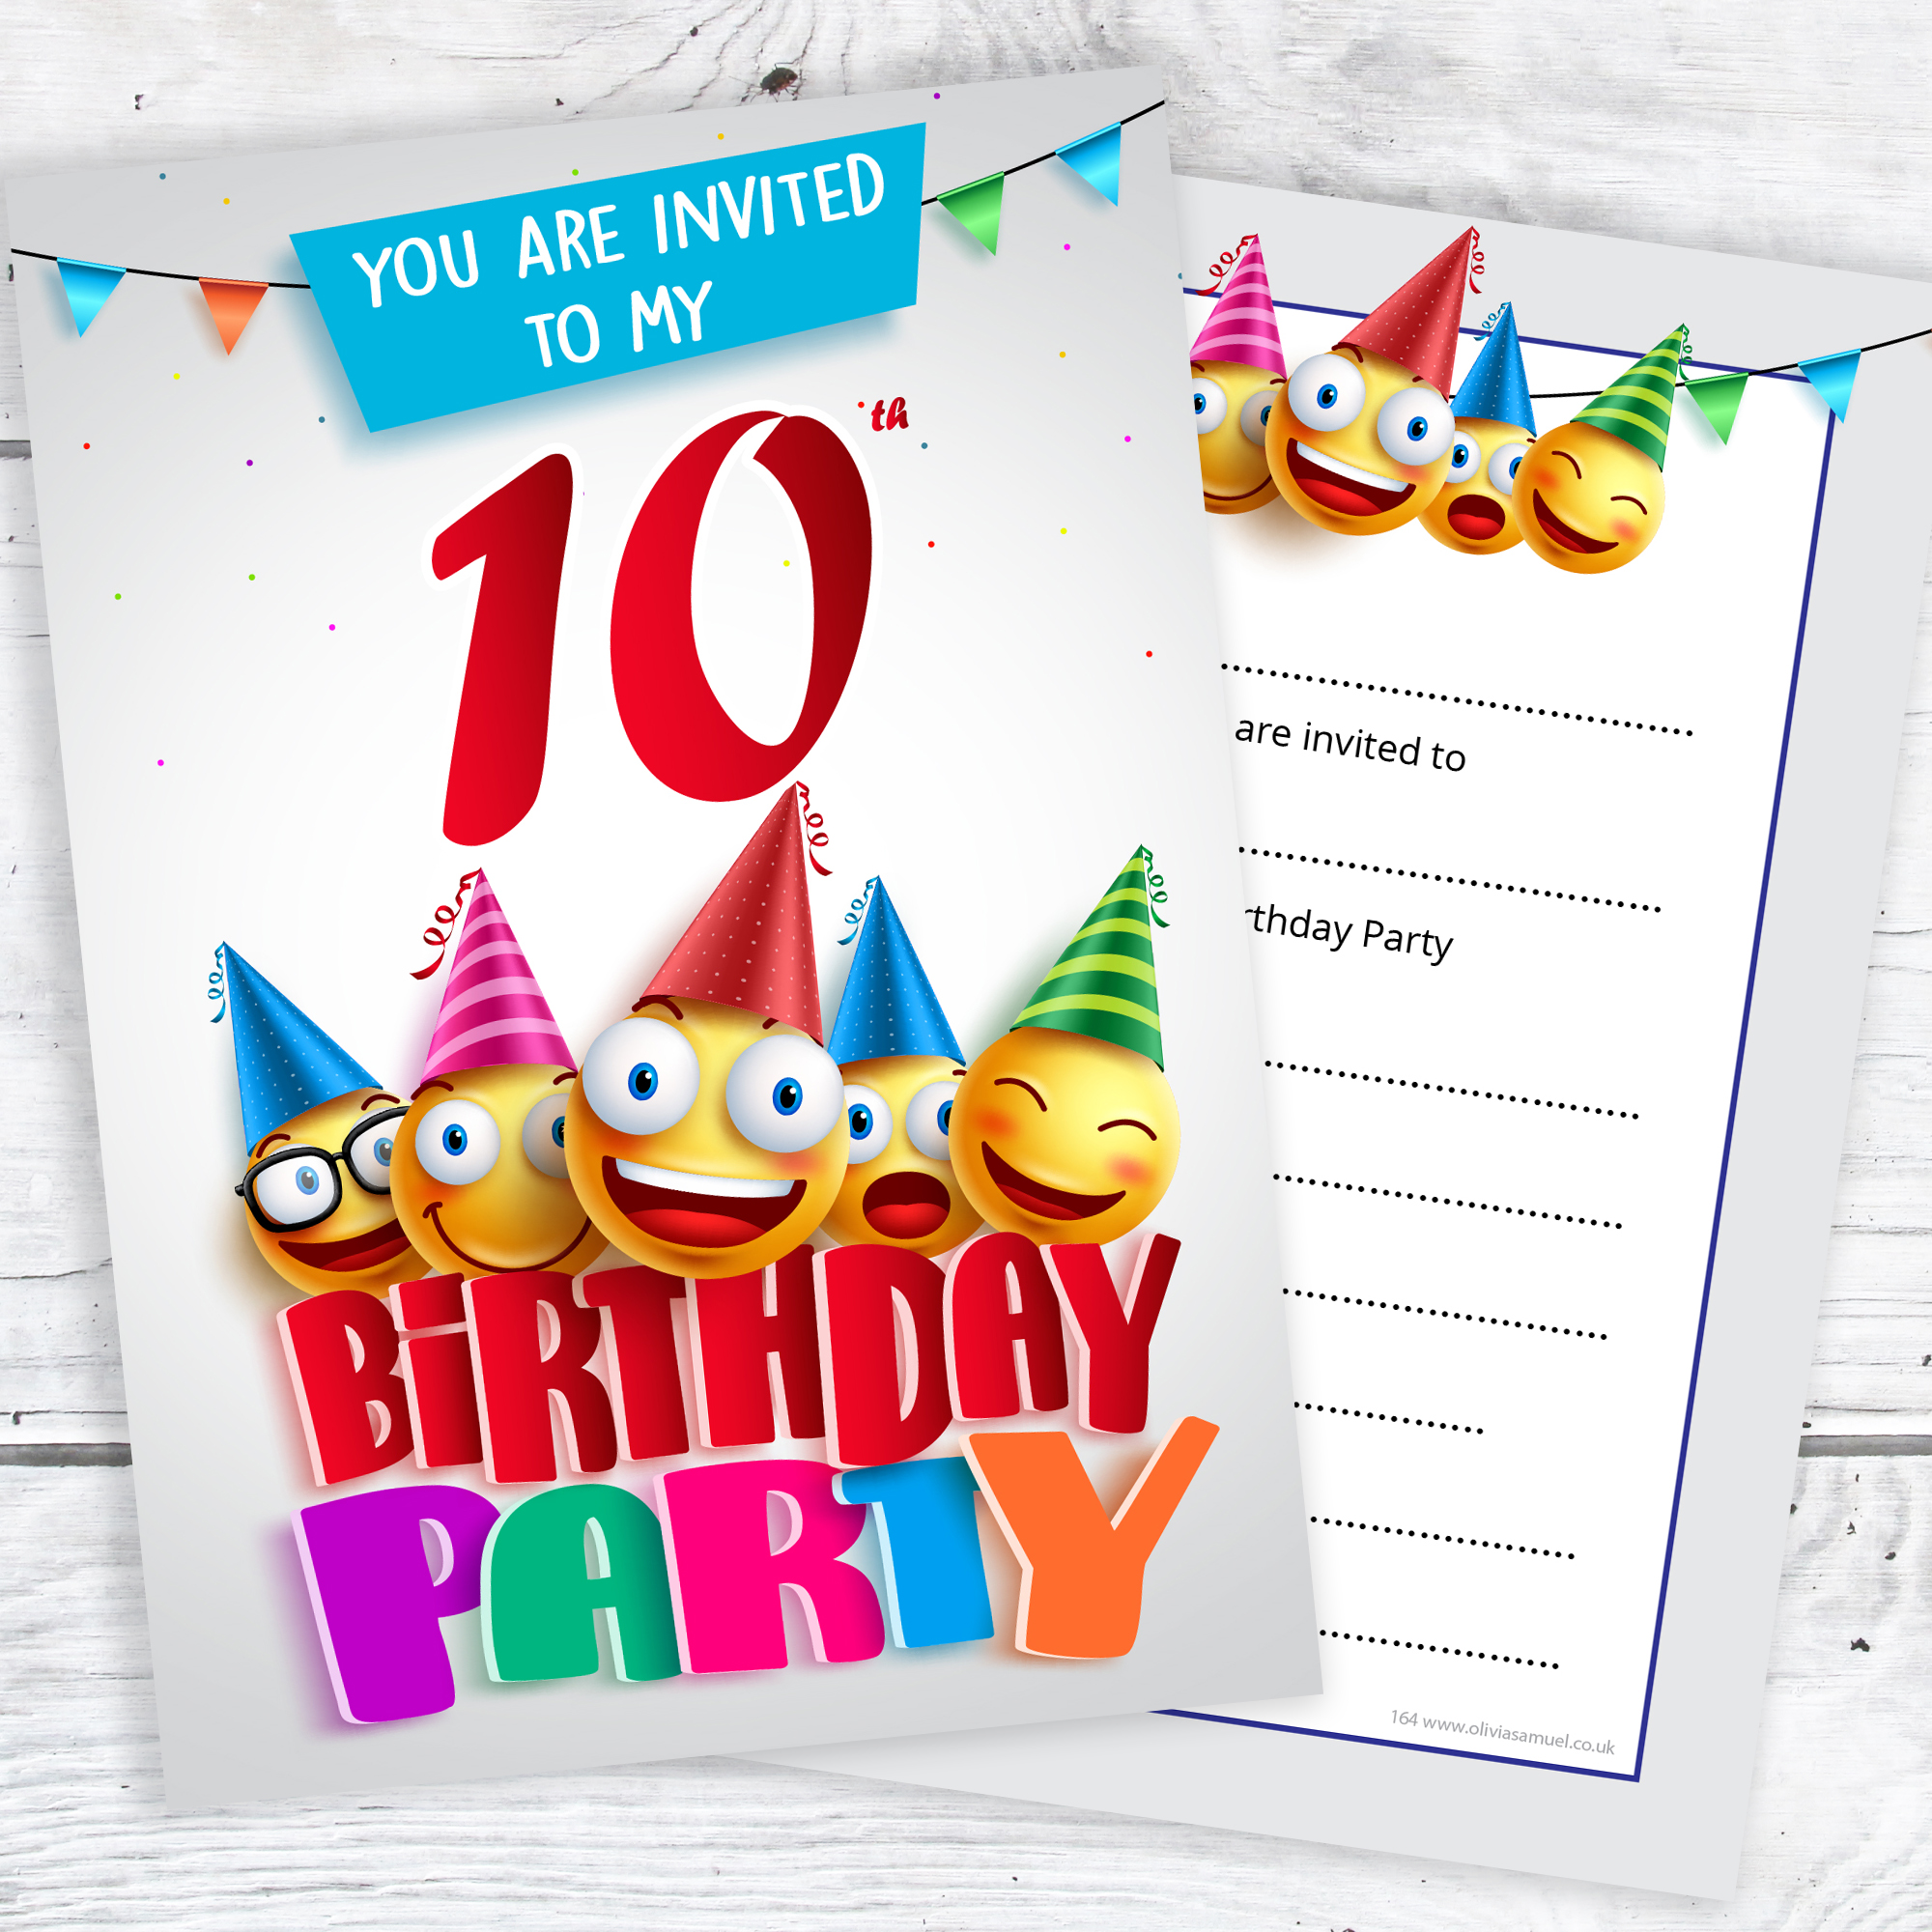 10th birthday party invites emoji style ready to write with